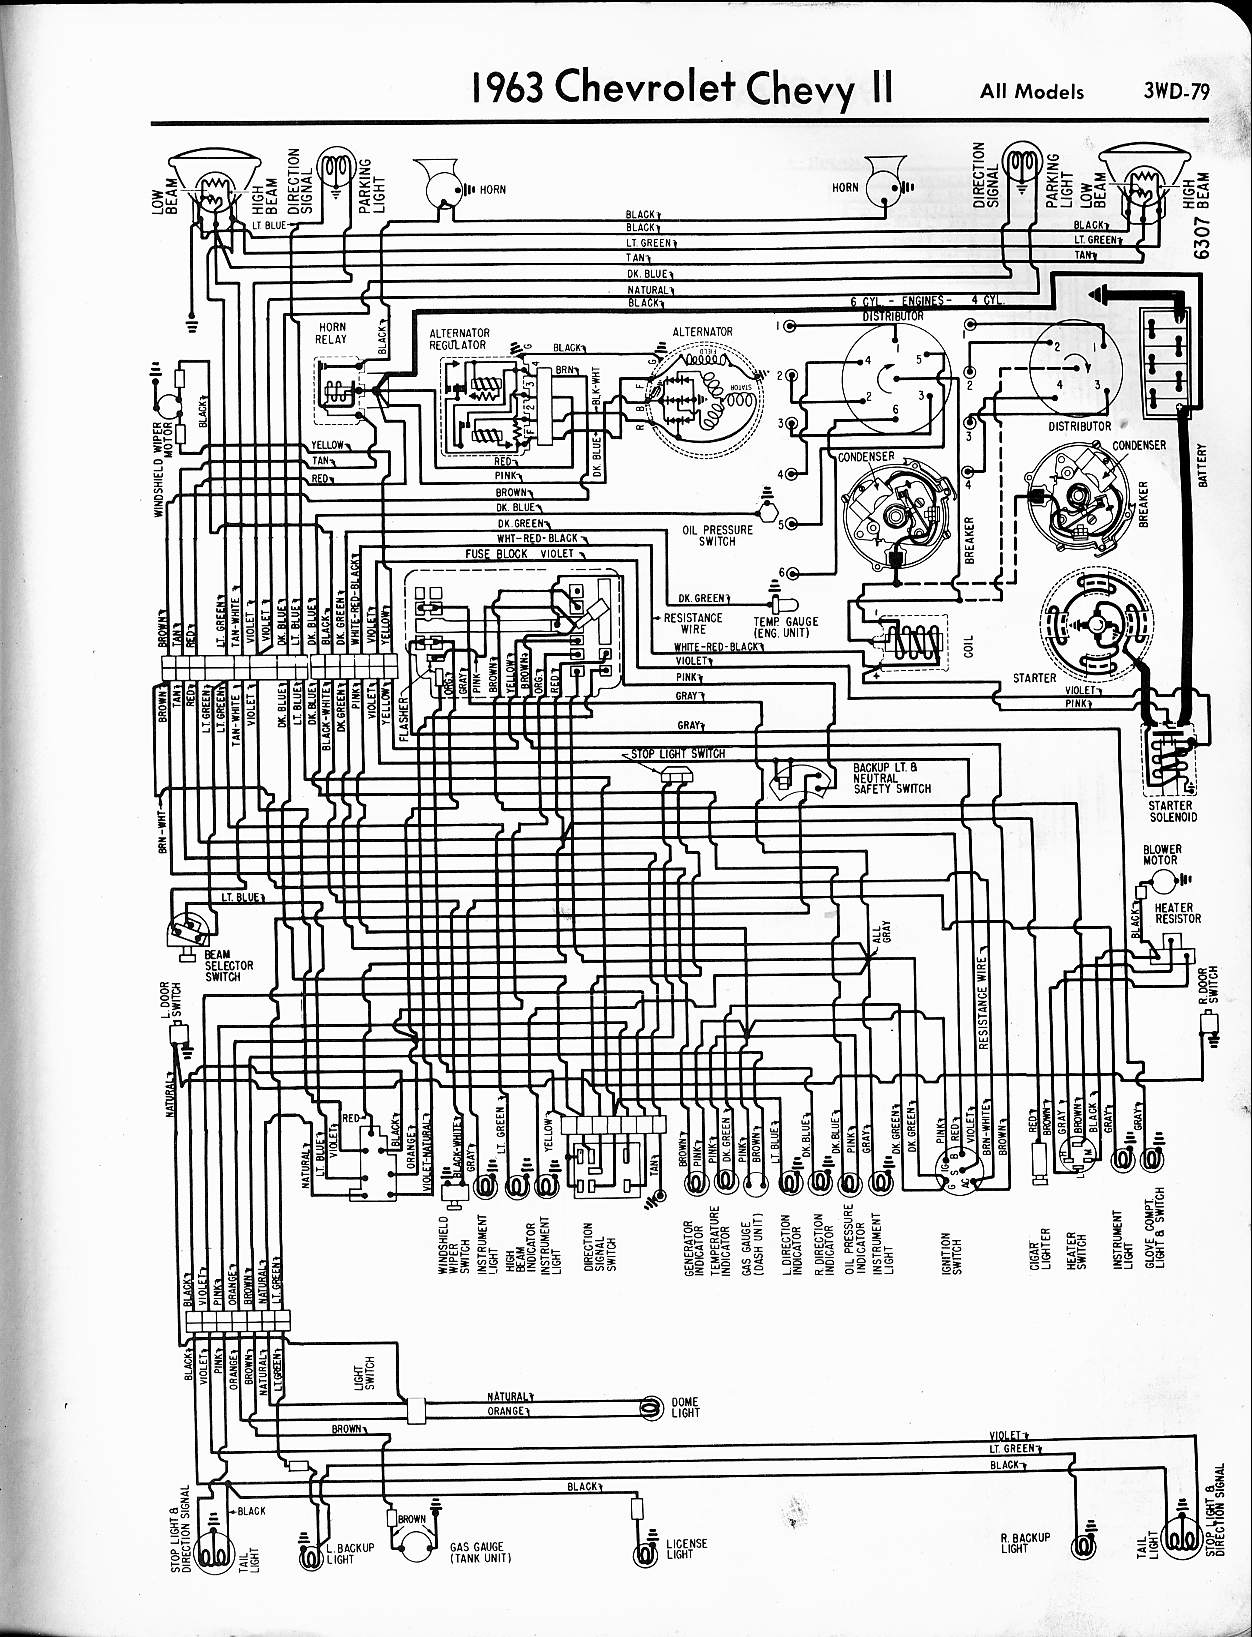 hight resolution of 57 65 chevy wiring diagrams 2009 chevrolet impala wiring diagram 1963 chevy ii all models